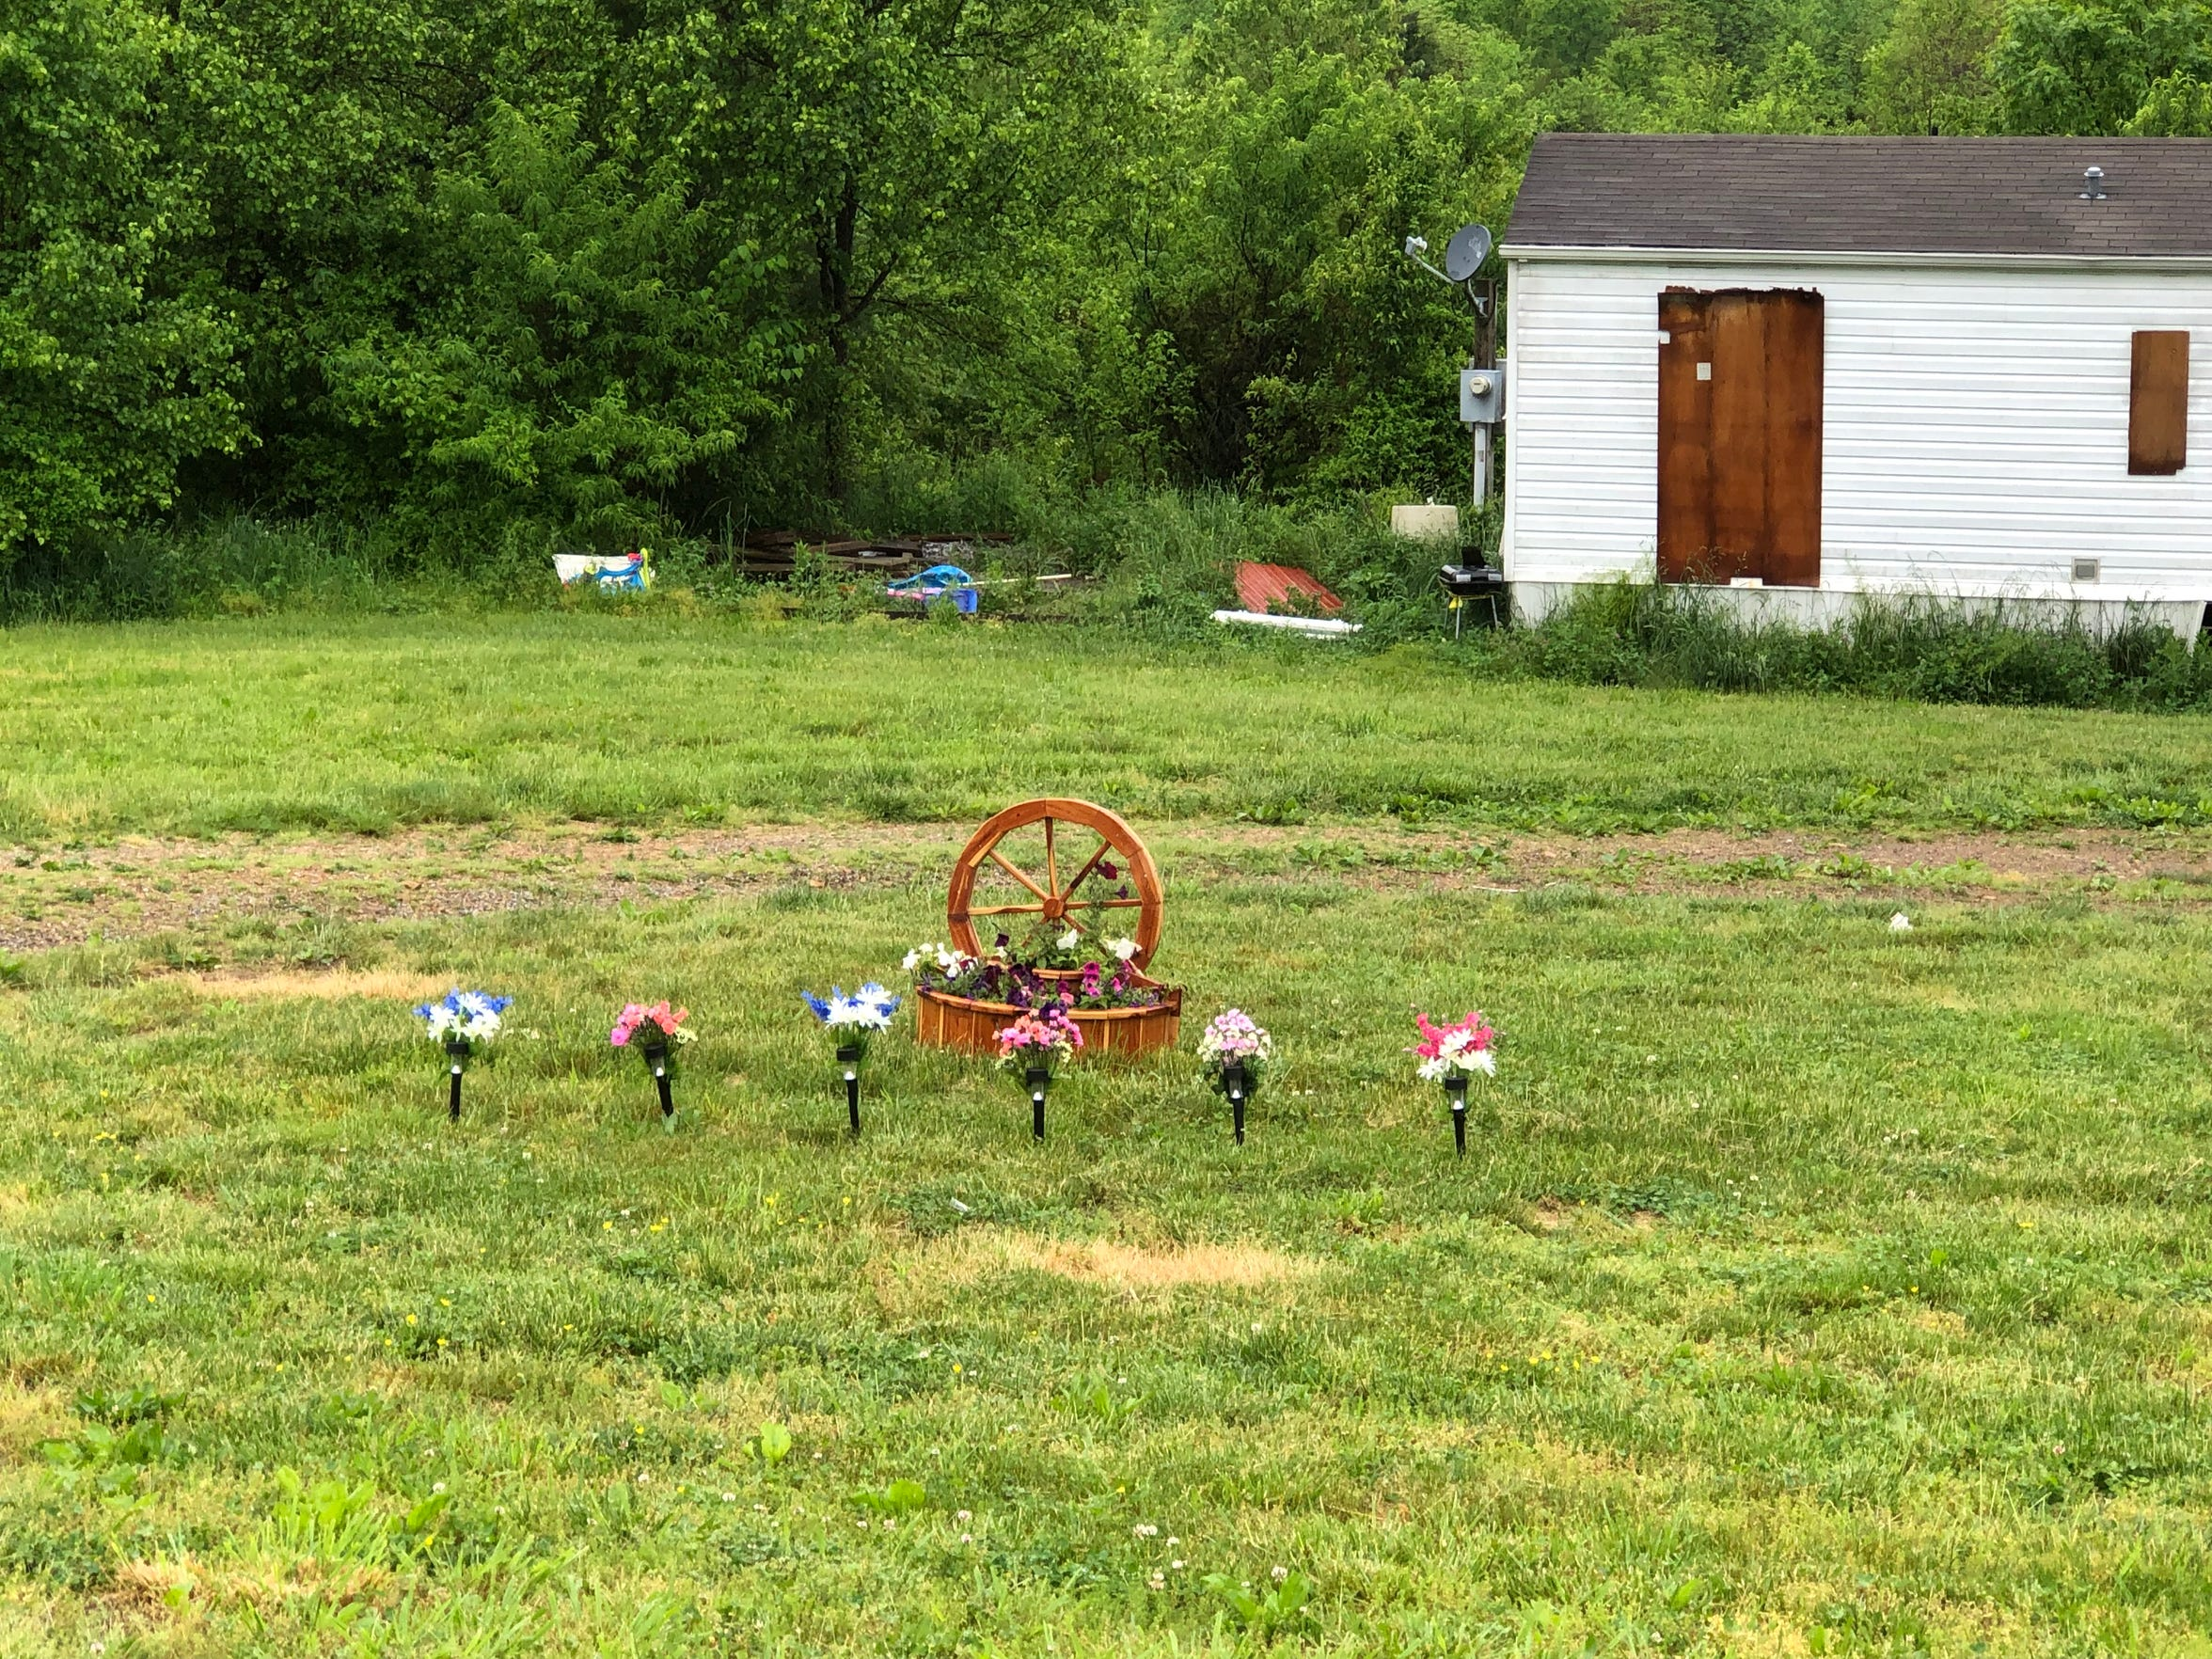 A memorial has been placed outside the Cummins home.